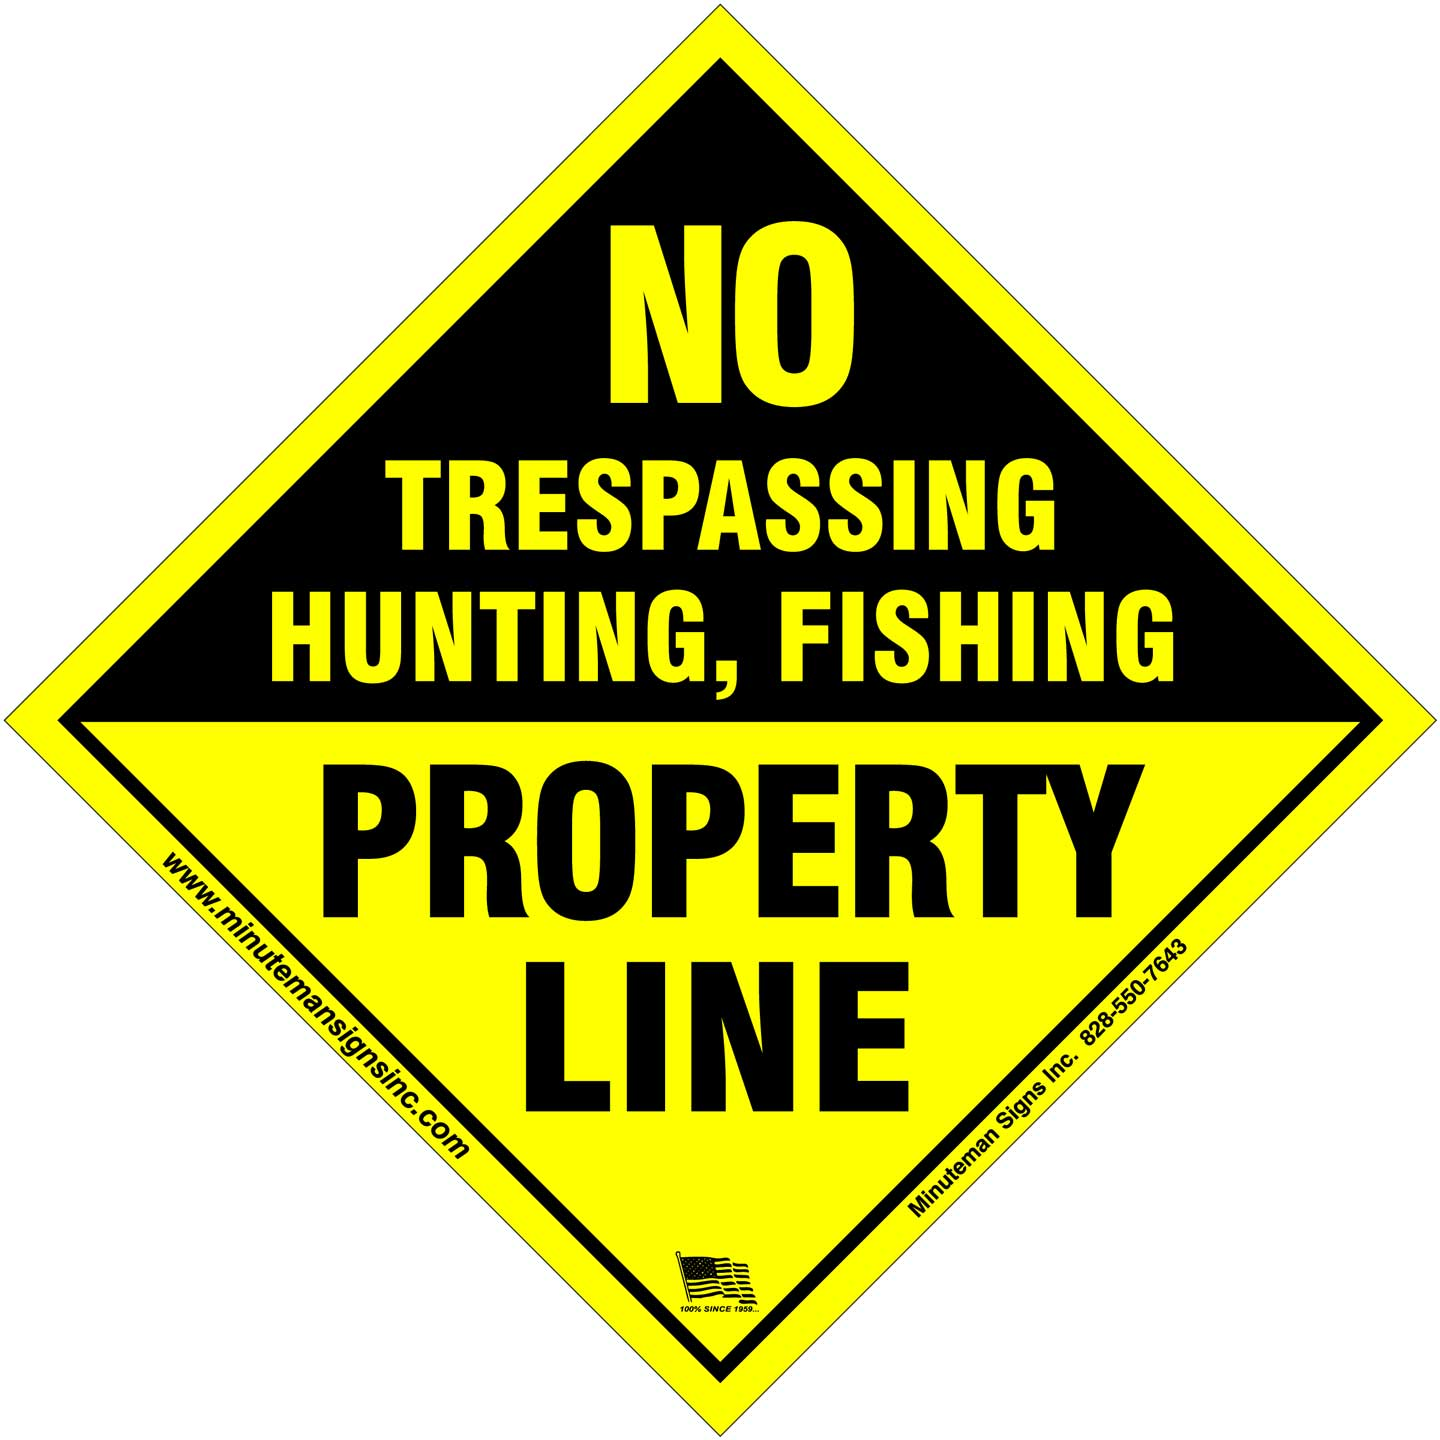 Property Line small aluminum Posted sign